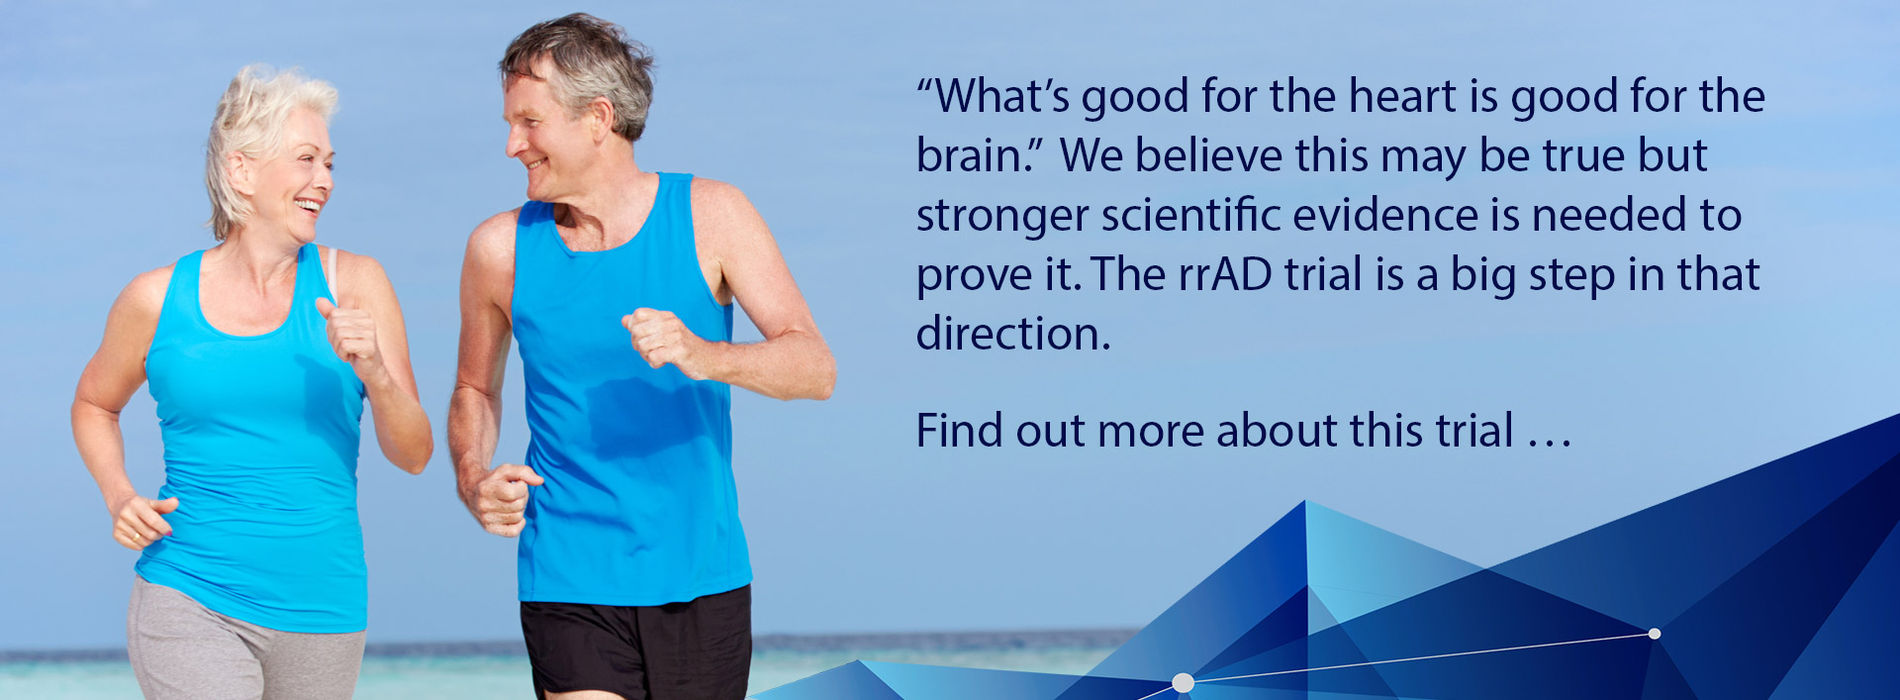 """What's good for the heart is good for the brain.""  We believe this may be true but stronger scientific evidence is needed to prove it. The rrAD trial is a big step in that direction.  Find out more about this trial"